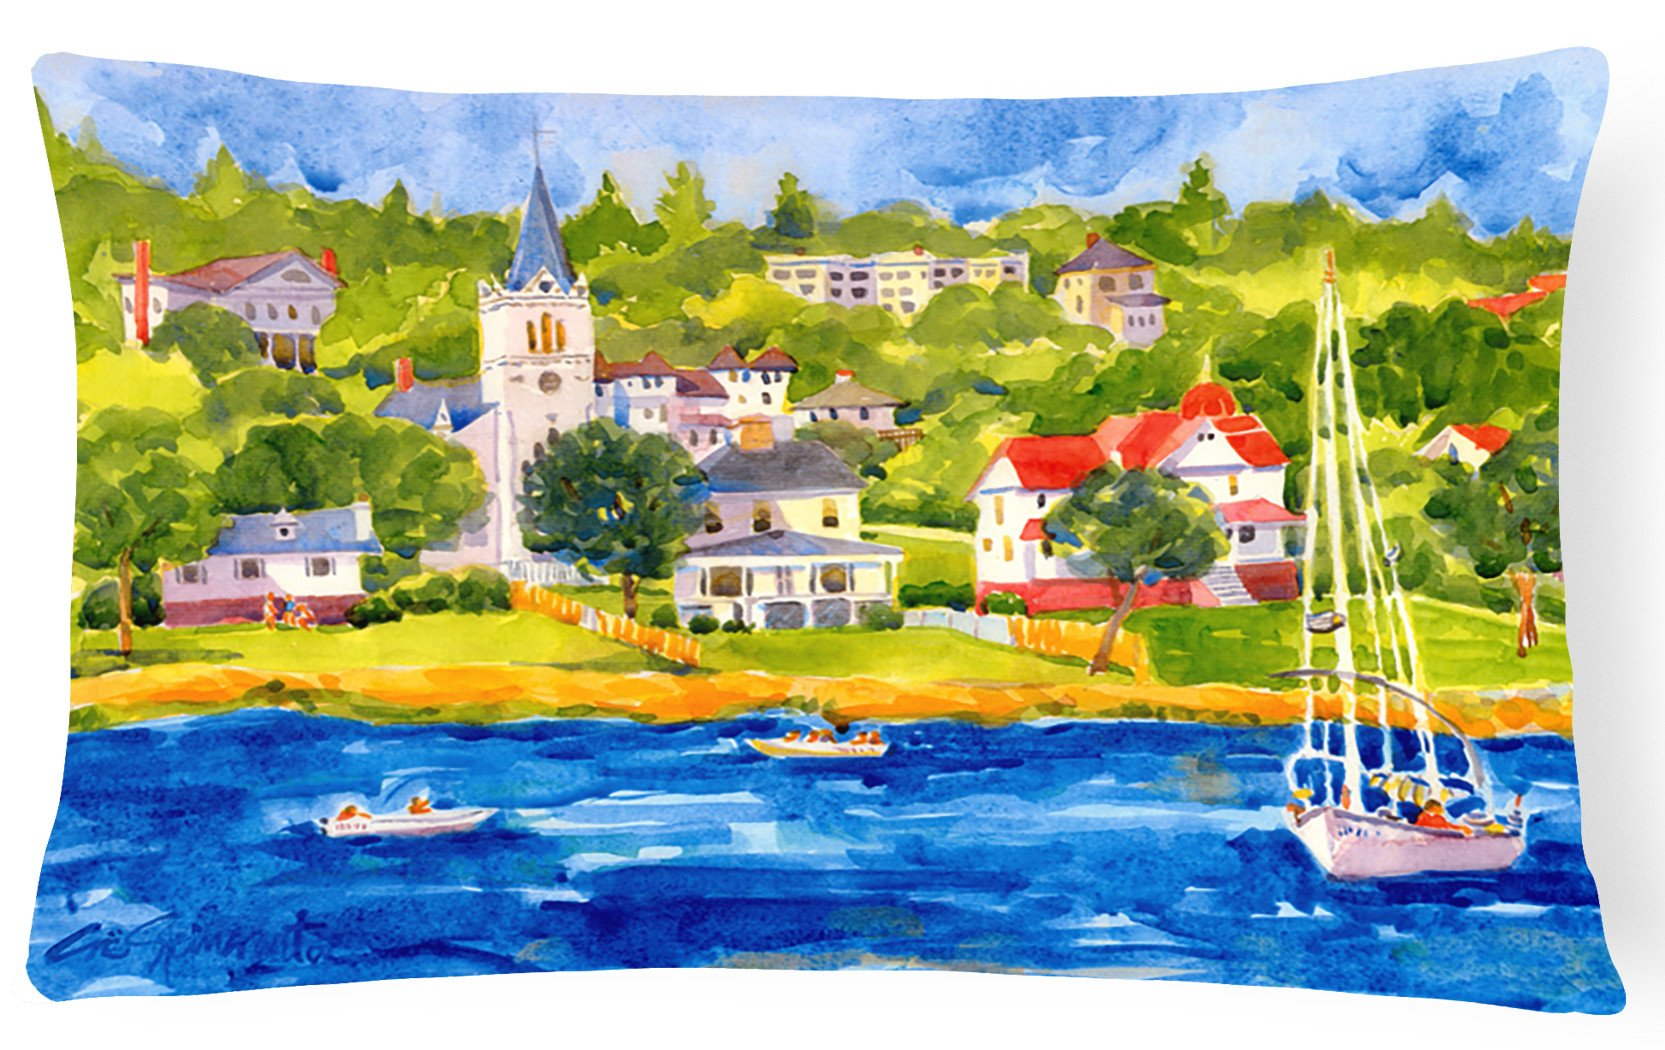 Harbour Scene with Sailboat  Decorative   Canvas Fabric Pillow by Caroline's Treasures